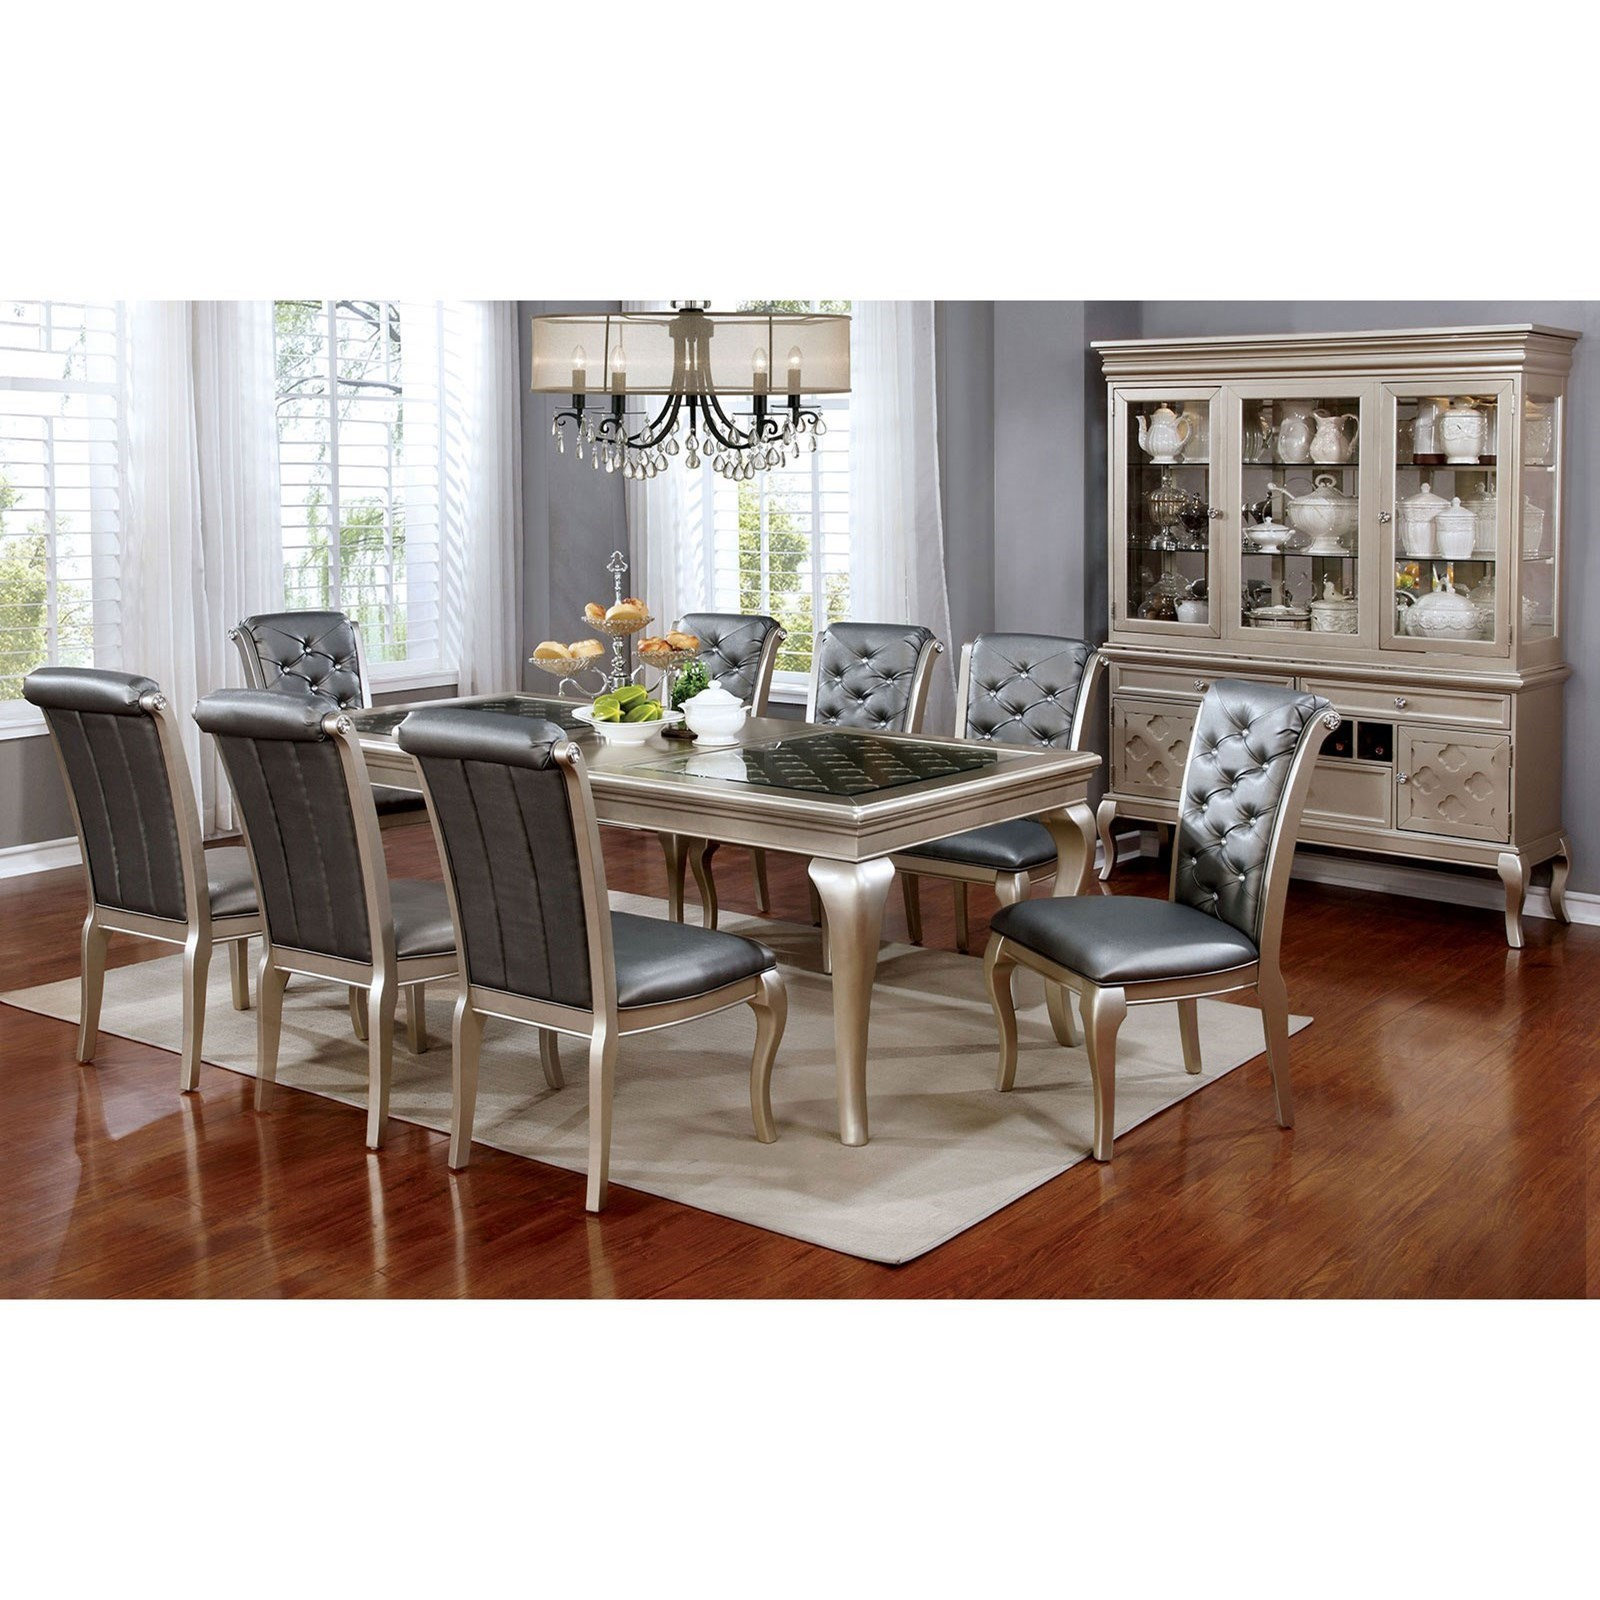 Amina 9 Piece Dining Set by Furniture of America at Dream Home Interiors